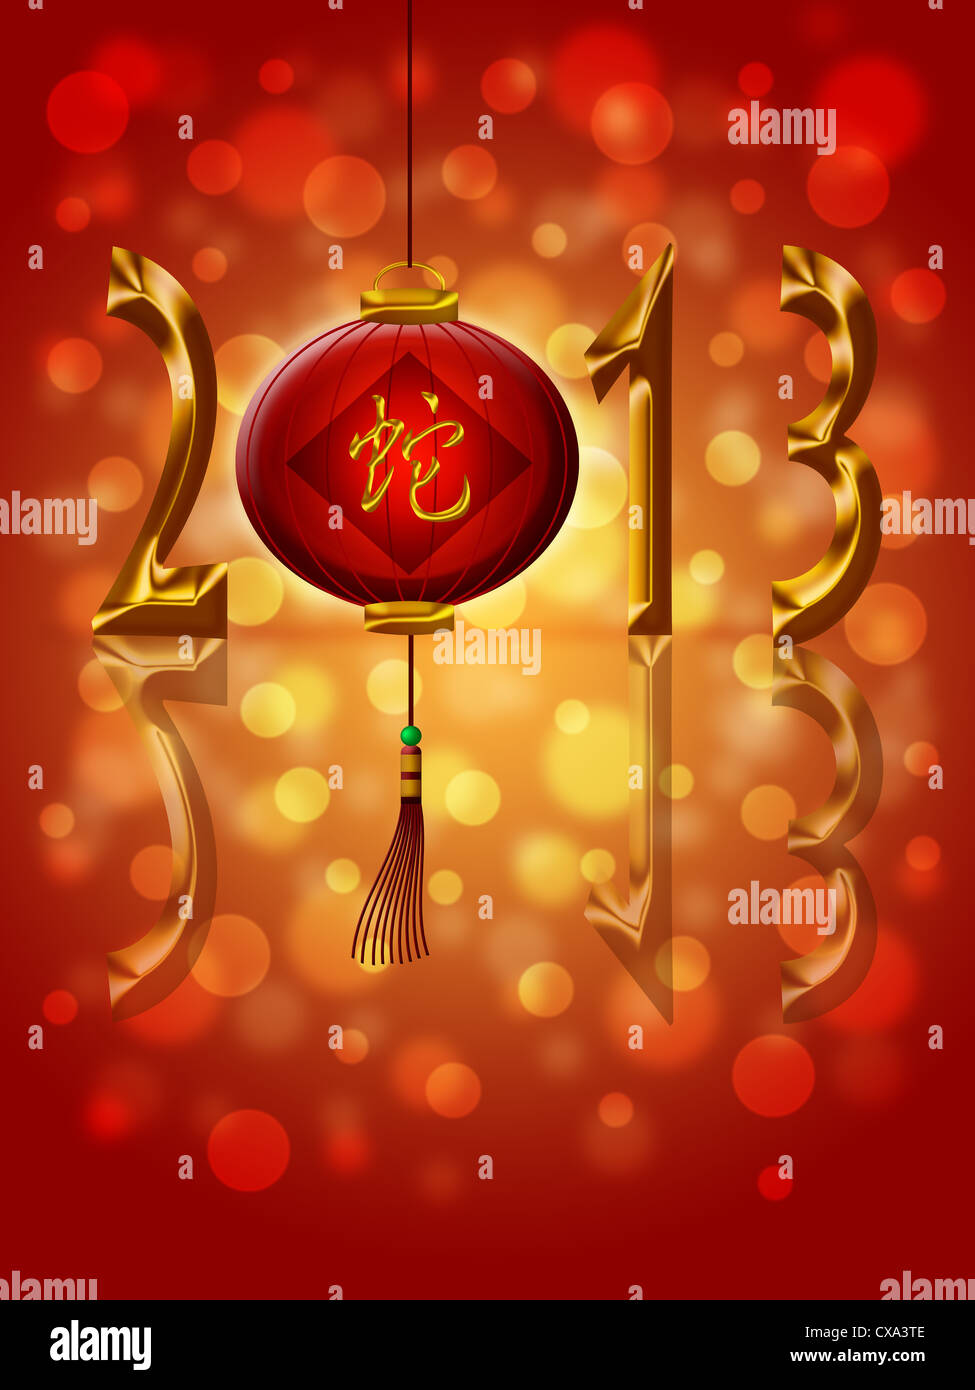 2013 Lunar New Year Lantern with Chinese Snake Calligraphy Text Illustration - Stock Image